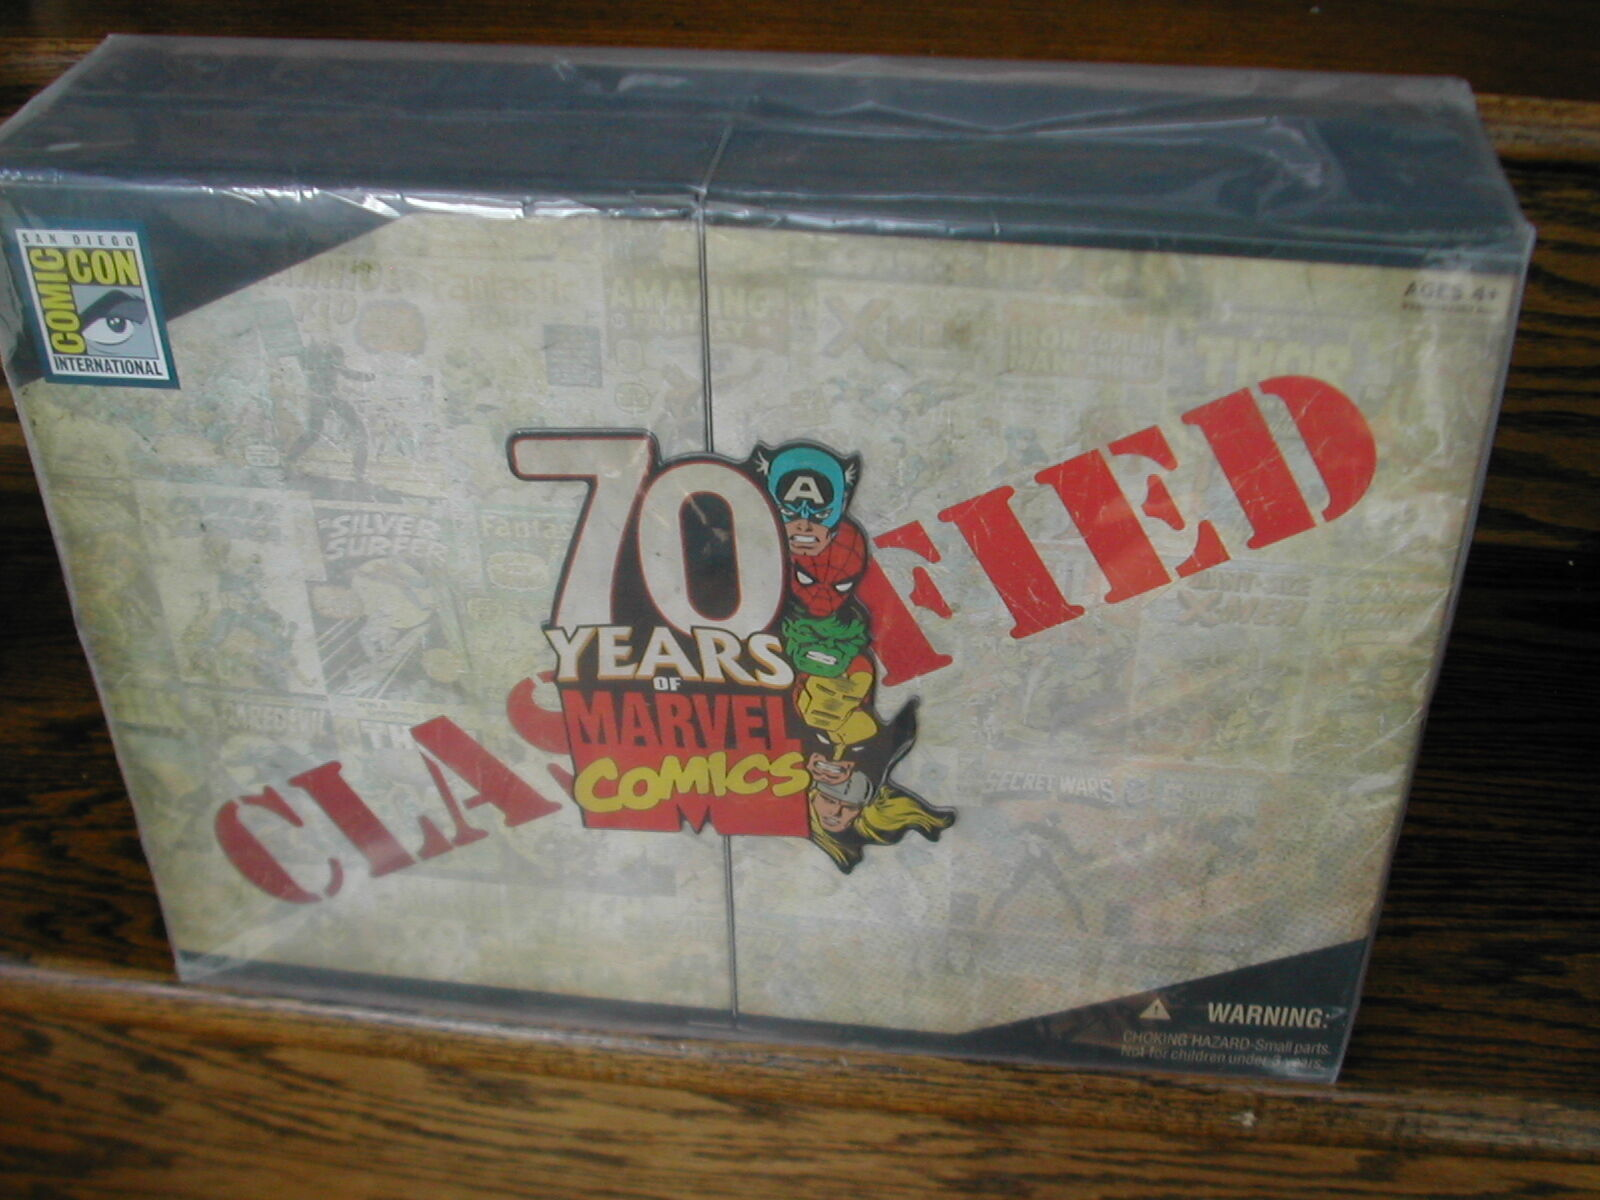 '09 SD Comic Con 70th Anniversary Years of Marvel Universe Invaders 4 Figure Set